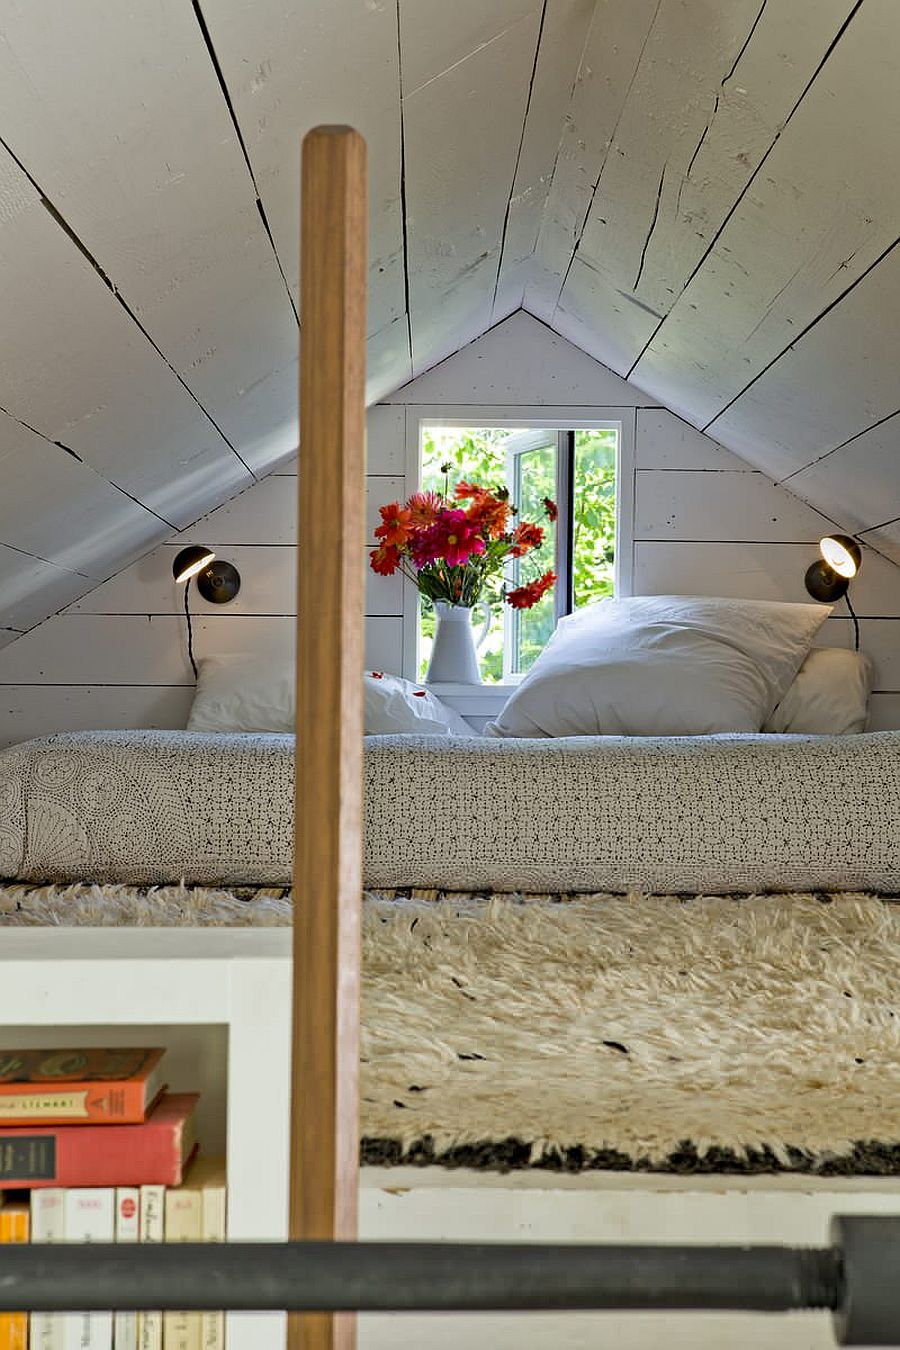 Tiny shabby chic loft bedroom inside the small home is a necessity rather than a luxury!